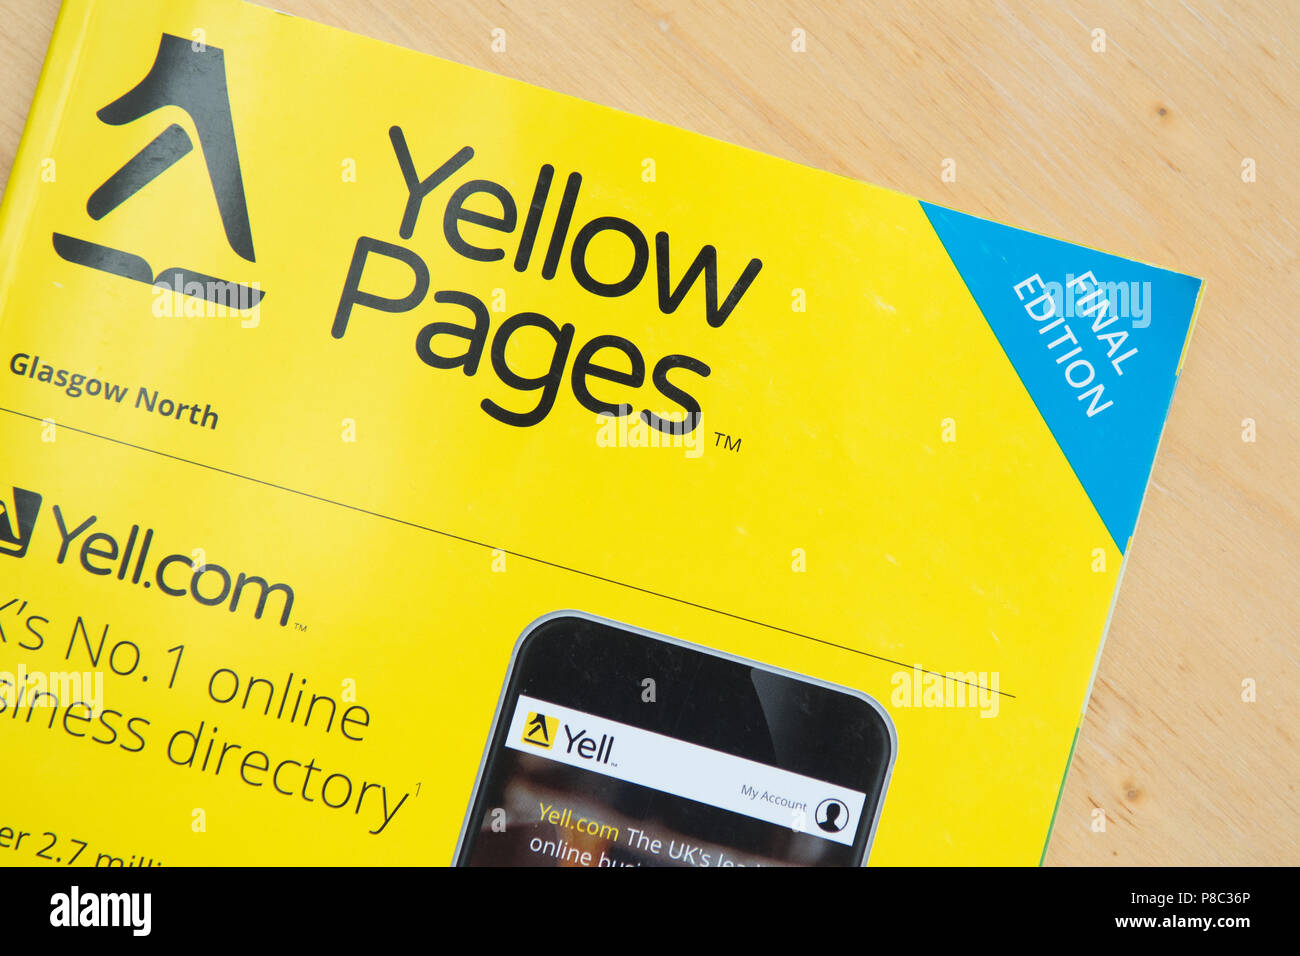 Yellow Pages Final Edition - Stock Image